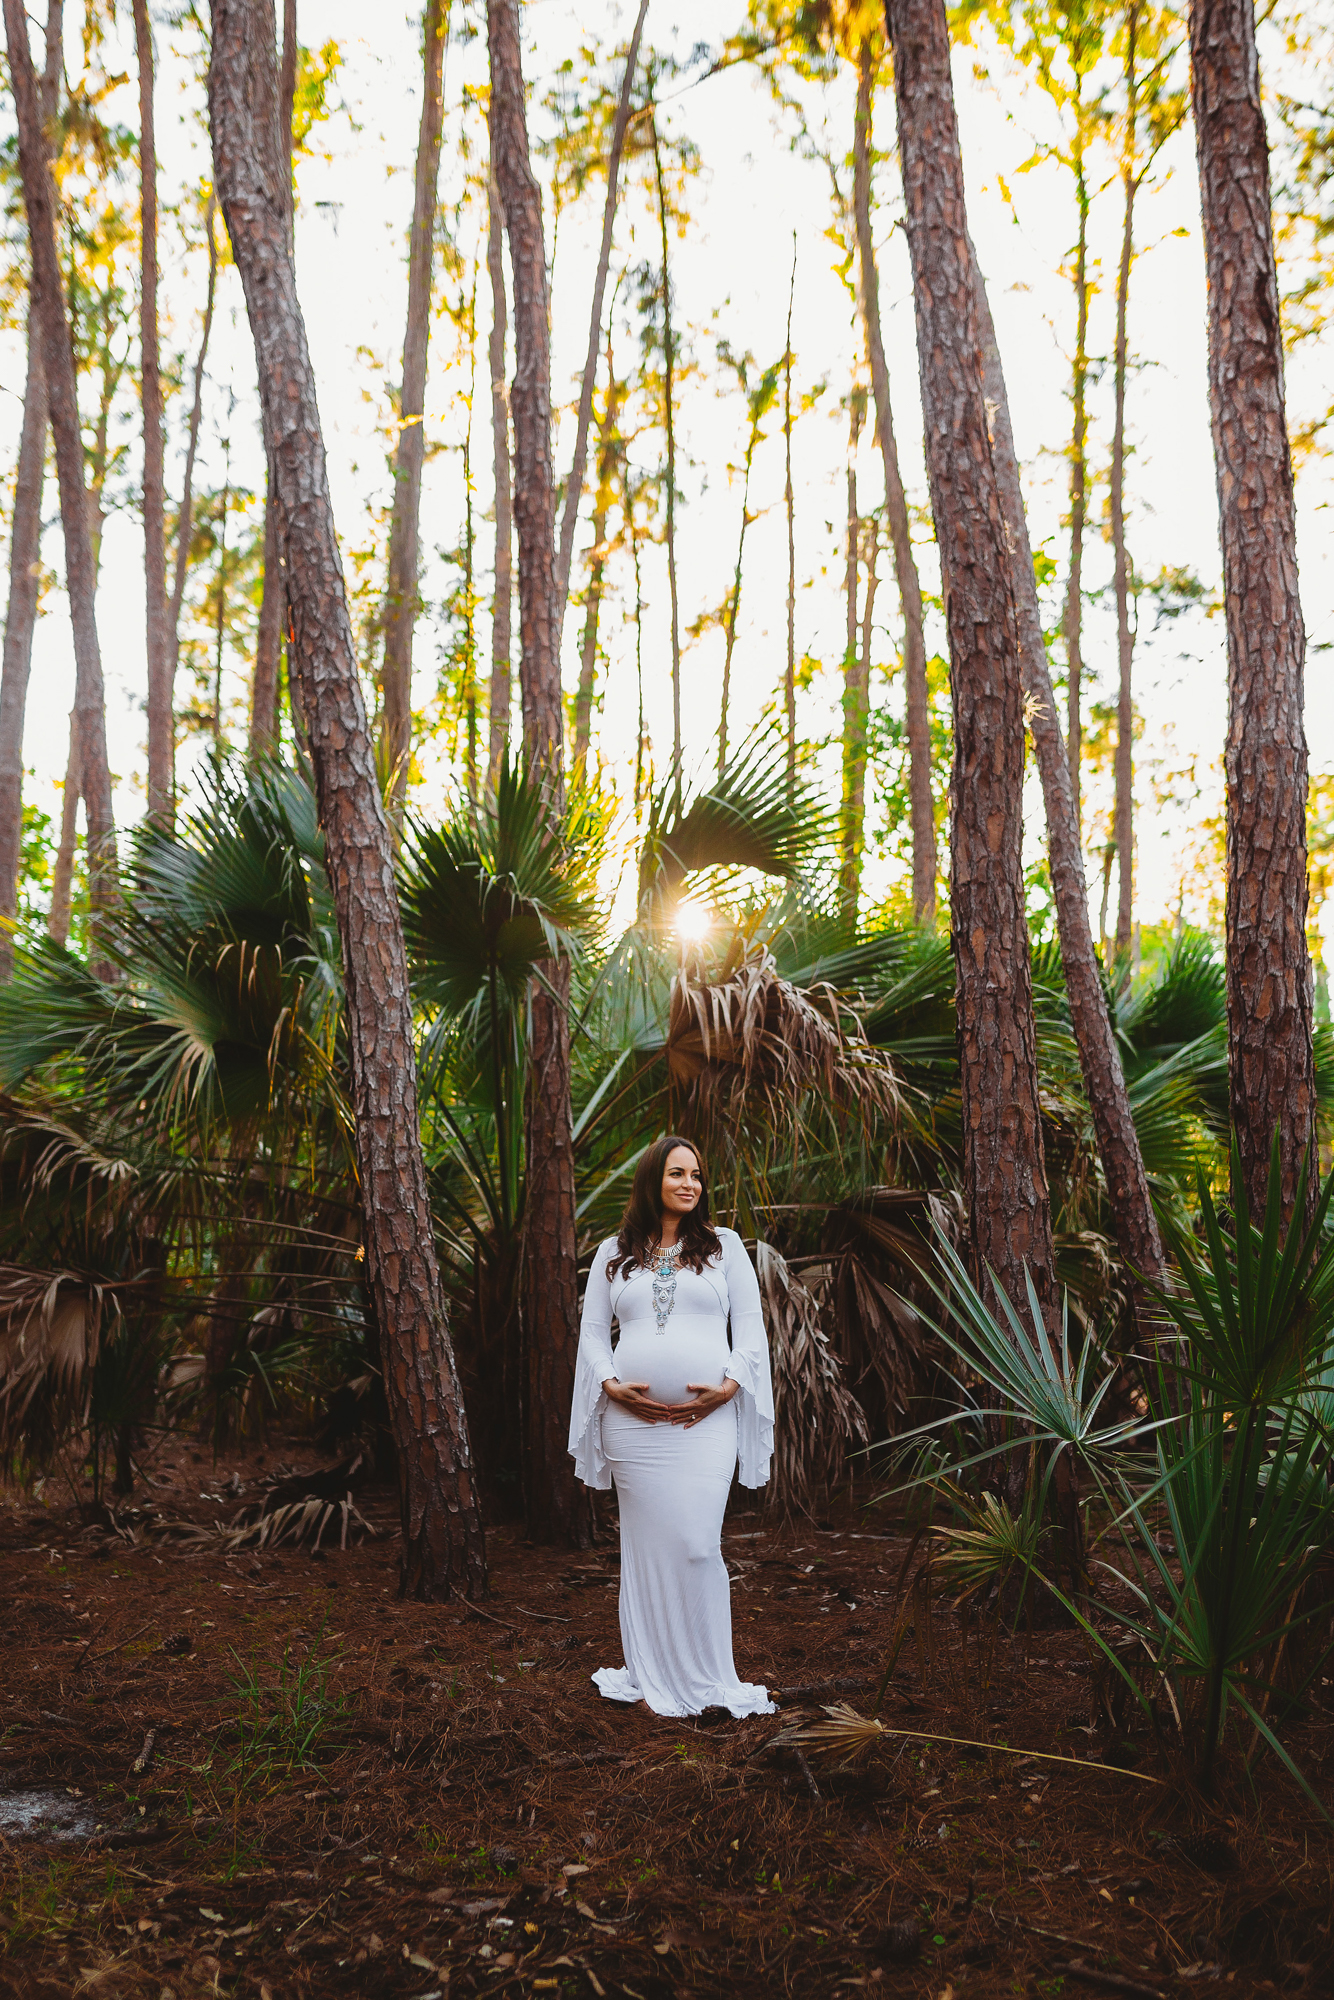 maternity portrait photography in palm harbor fl